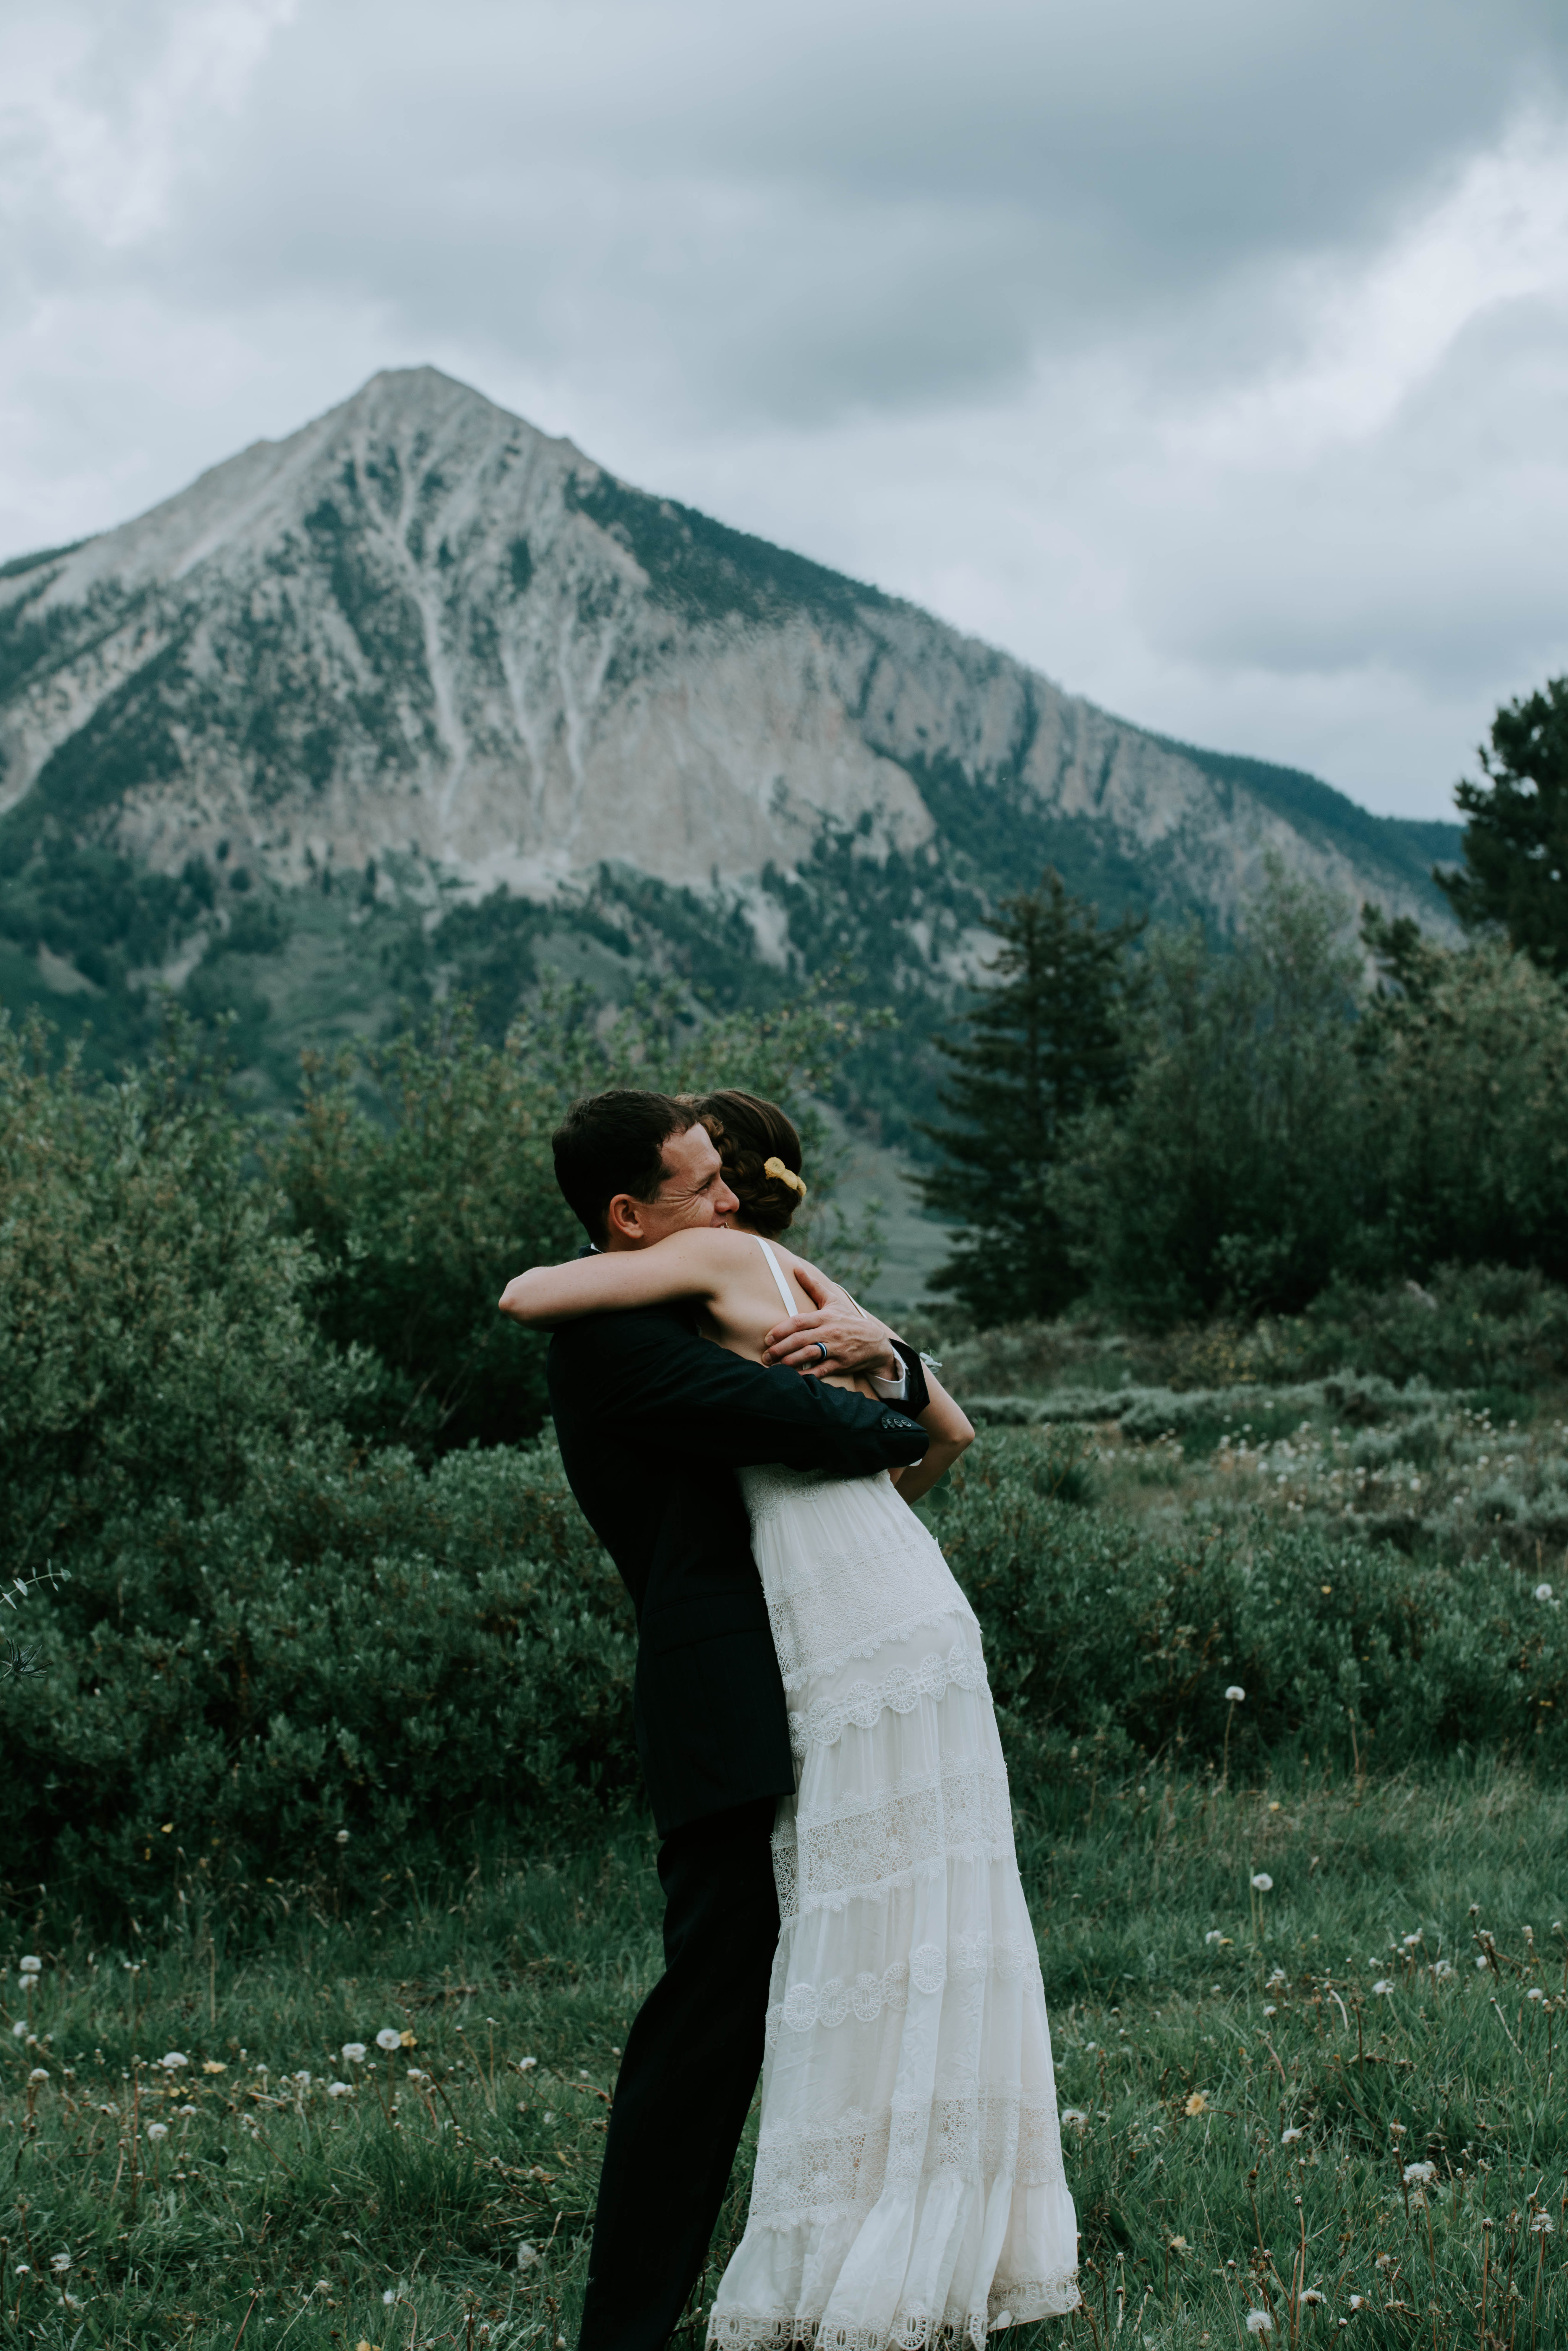 Laura_Alexe_Wedding_Crested_Butte_MegONeillPhotography__180616_124